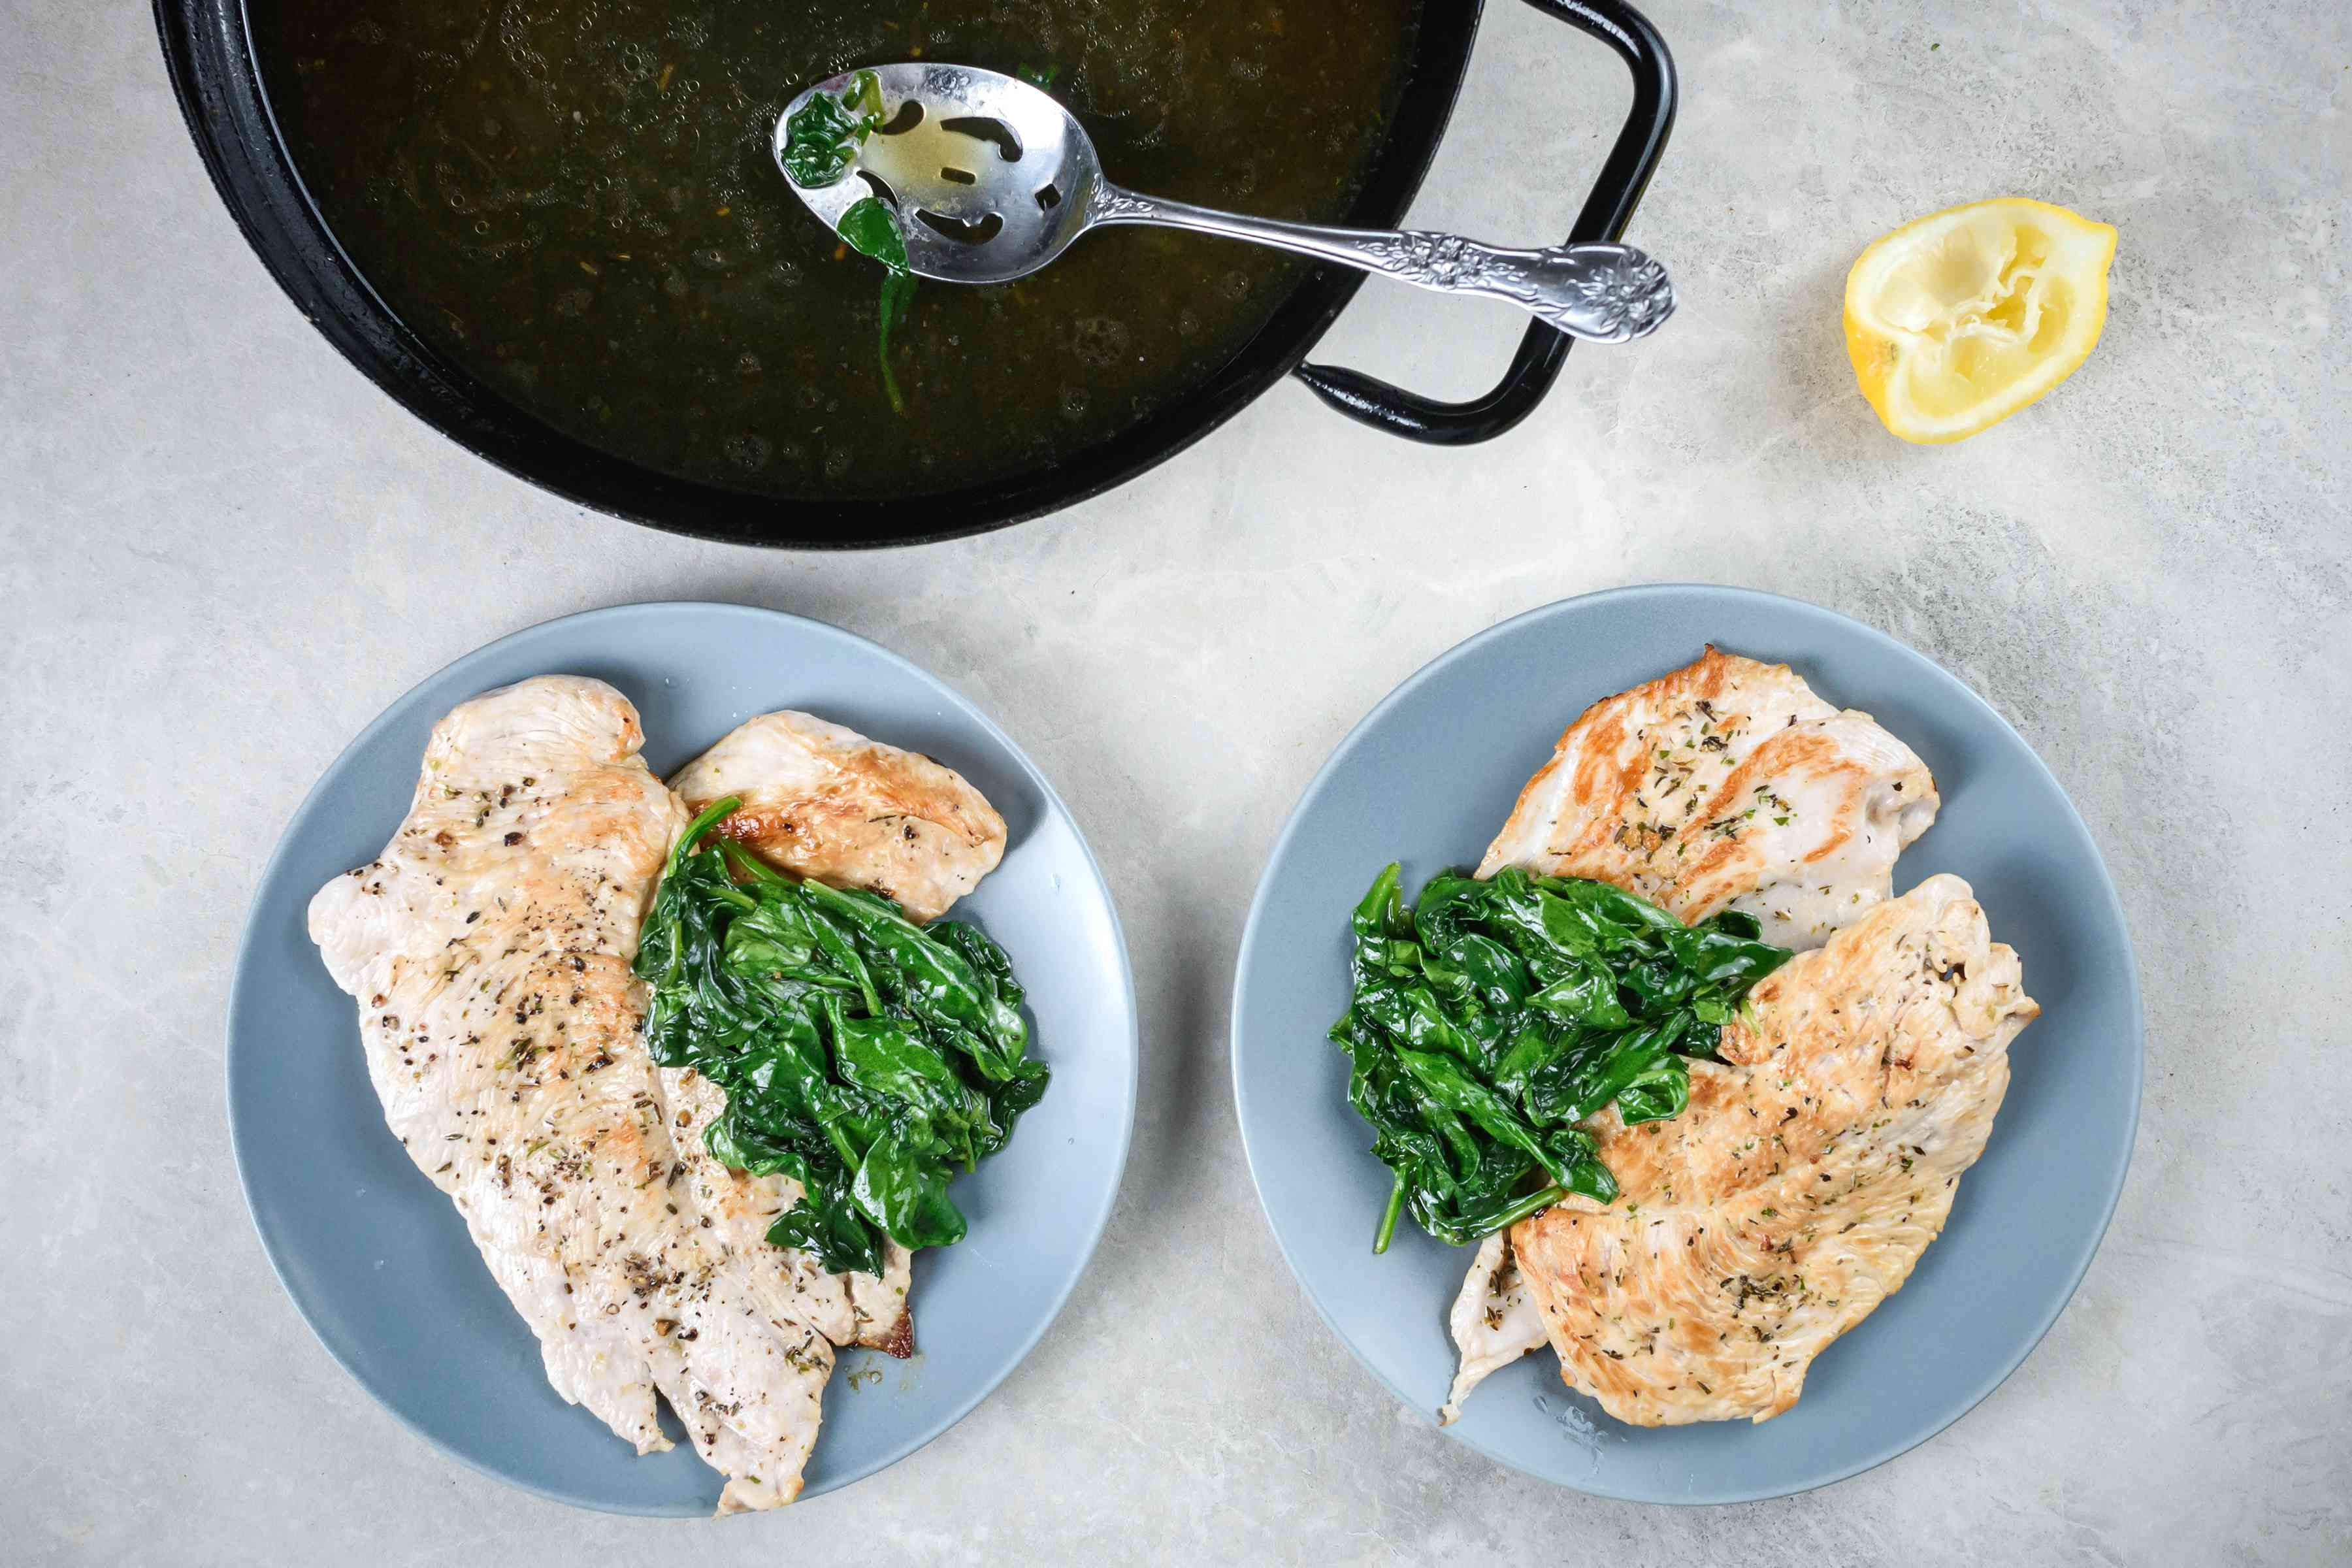 Adding greens and lemon juice to the turkey breasts